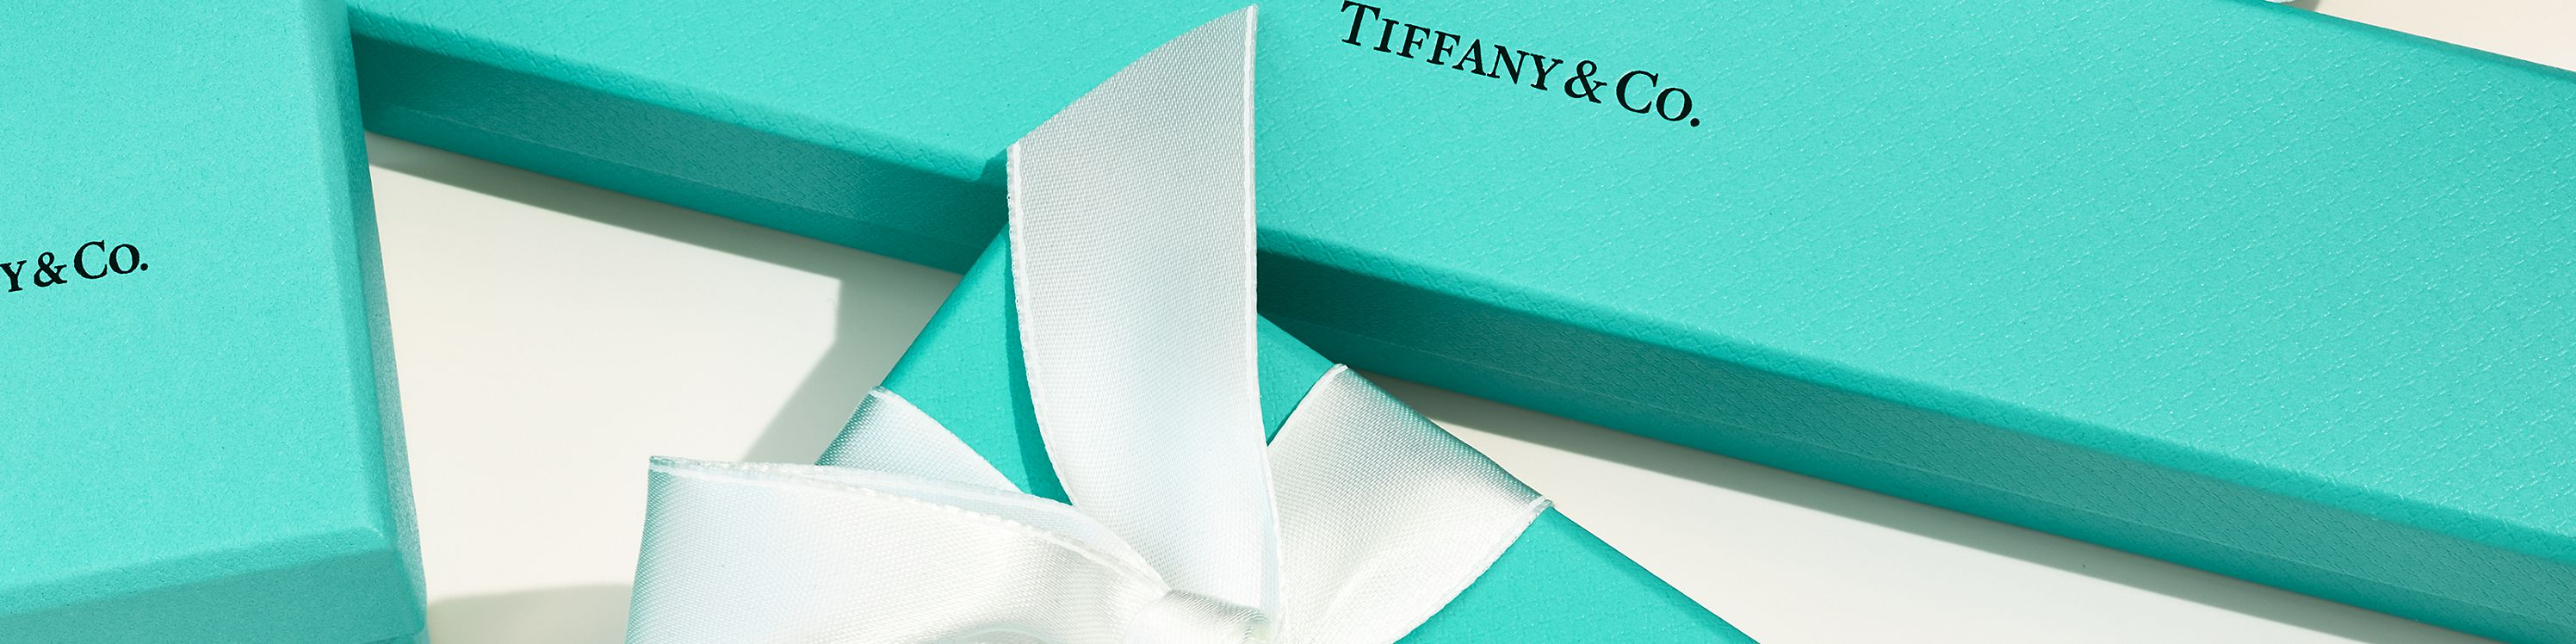 A linha do tempo da Tiffany & Co.